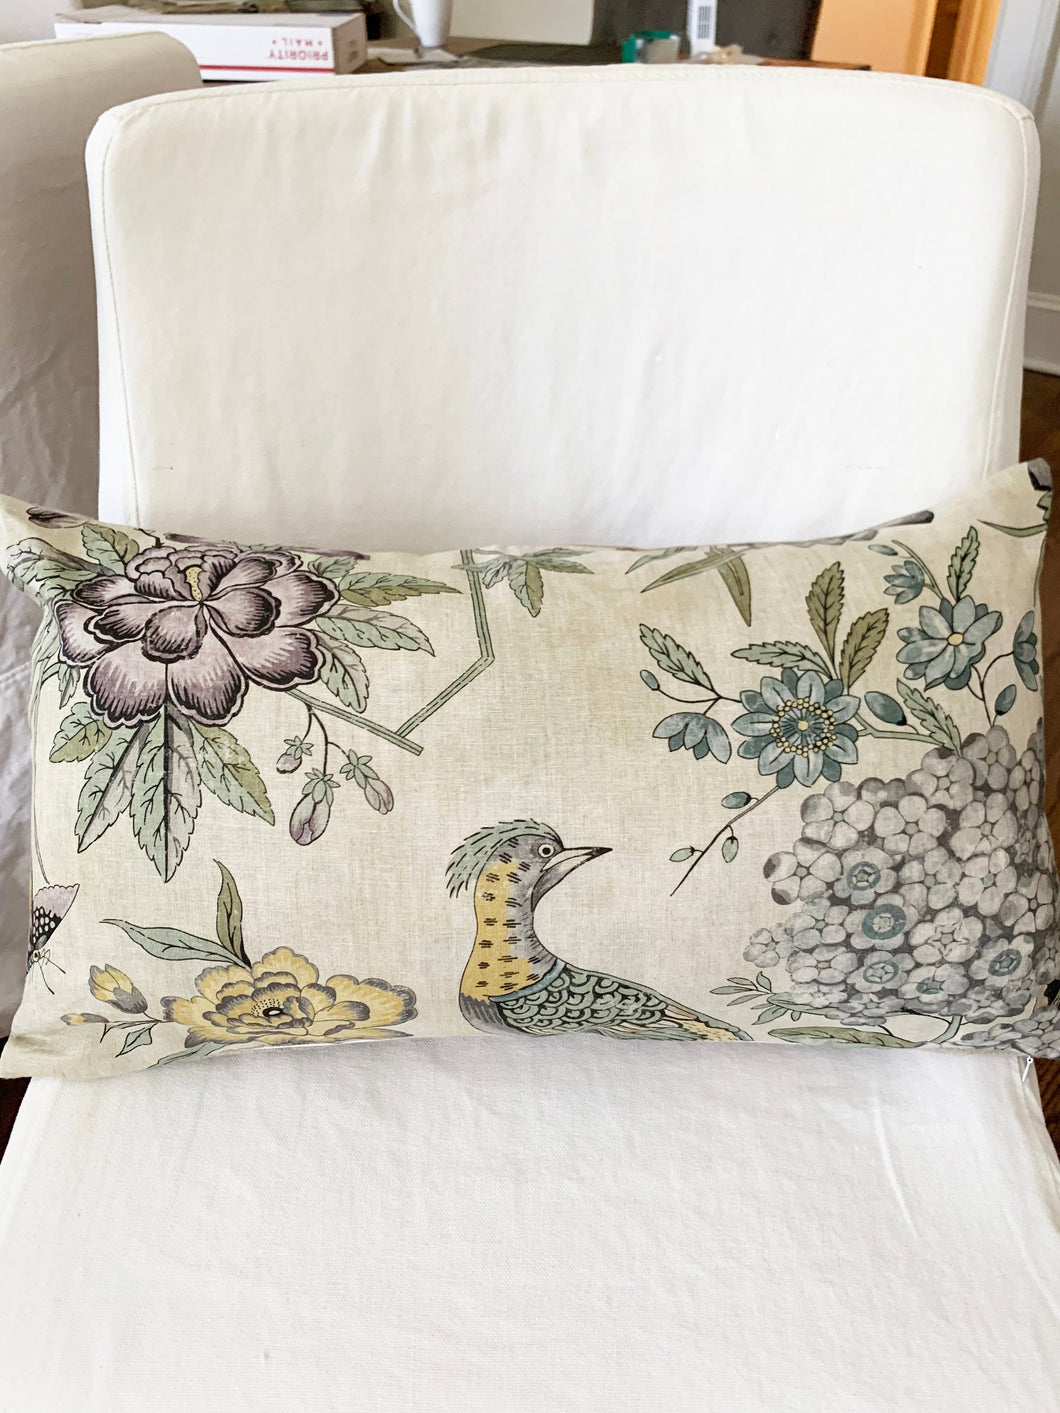 QUICK SHIP FEW left lumbar pillows 14 x 24 Thibaut Villeneuve grey yellow beige soft pillows thibaut pillow peacock print phoenix pheasant